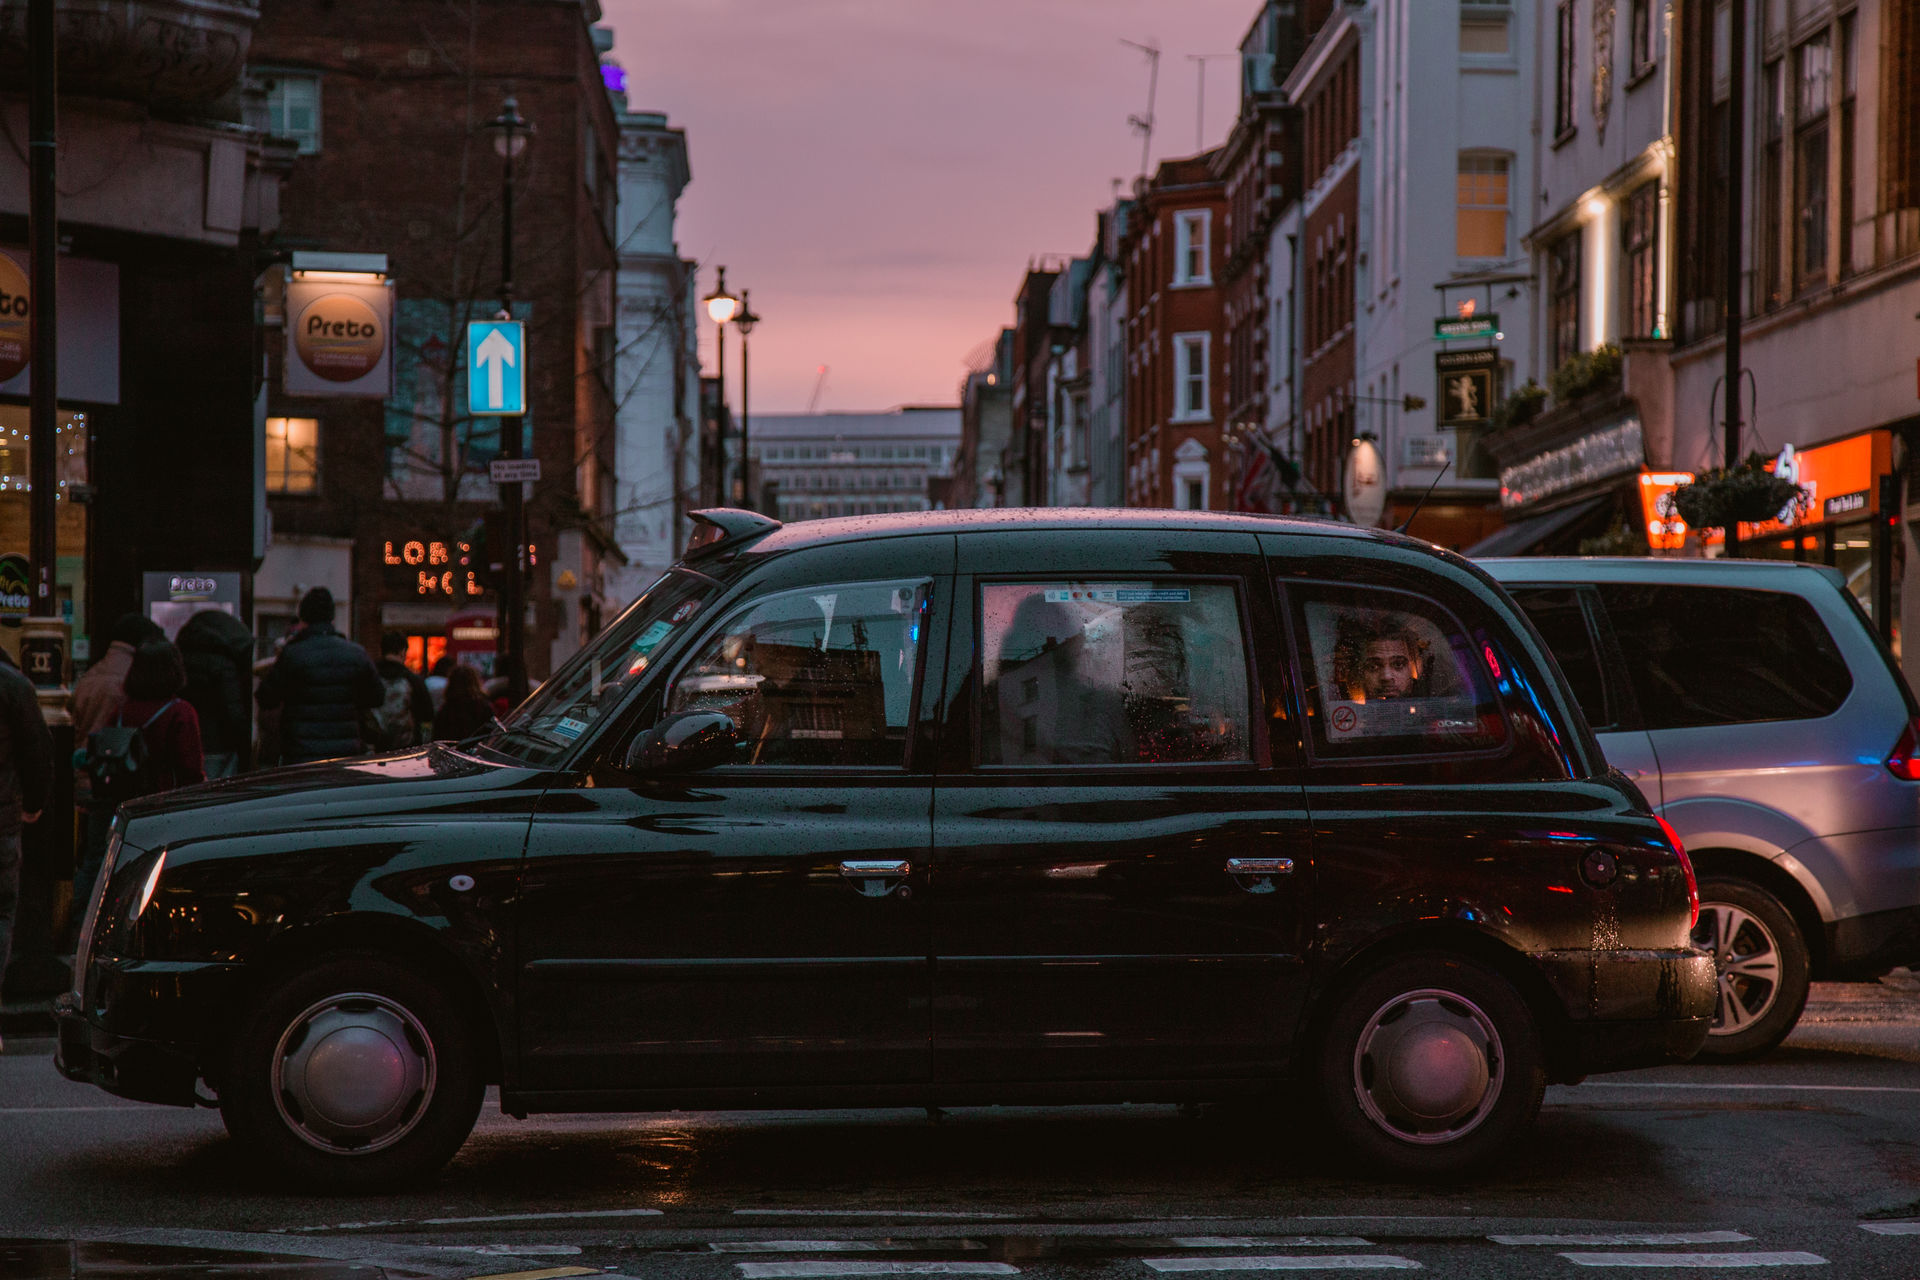 cruising down Soho streets moody Light Lights street photography street one man only City Life City city lights neon dusk evening dusk in the city one person Transportation people in transit Transit car Road London sunset Shades of Winter An Eye For Travel